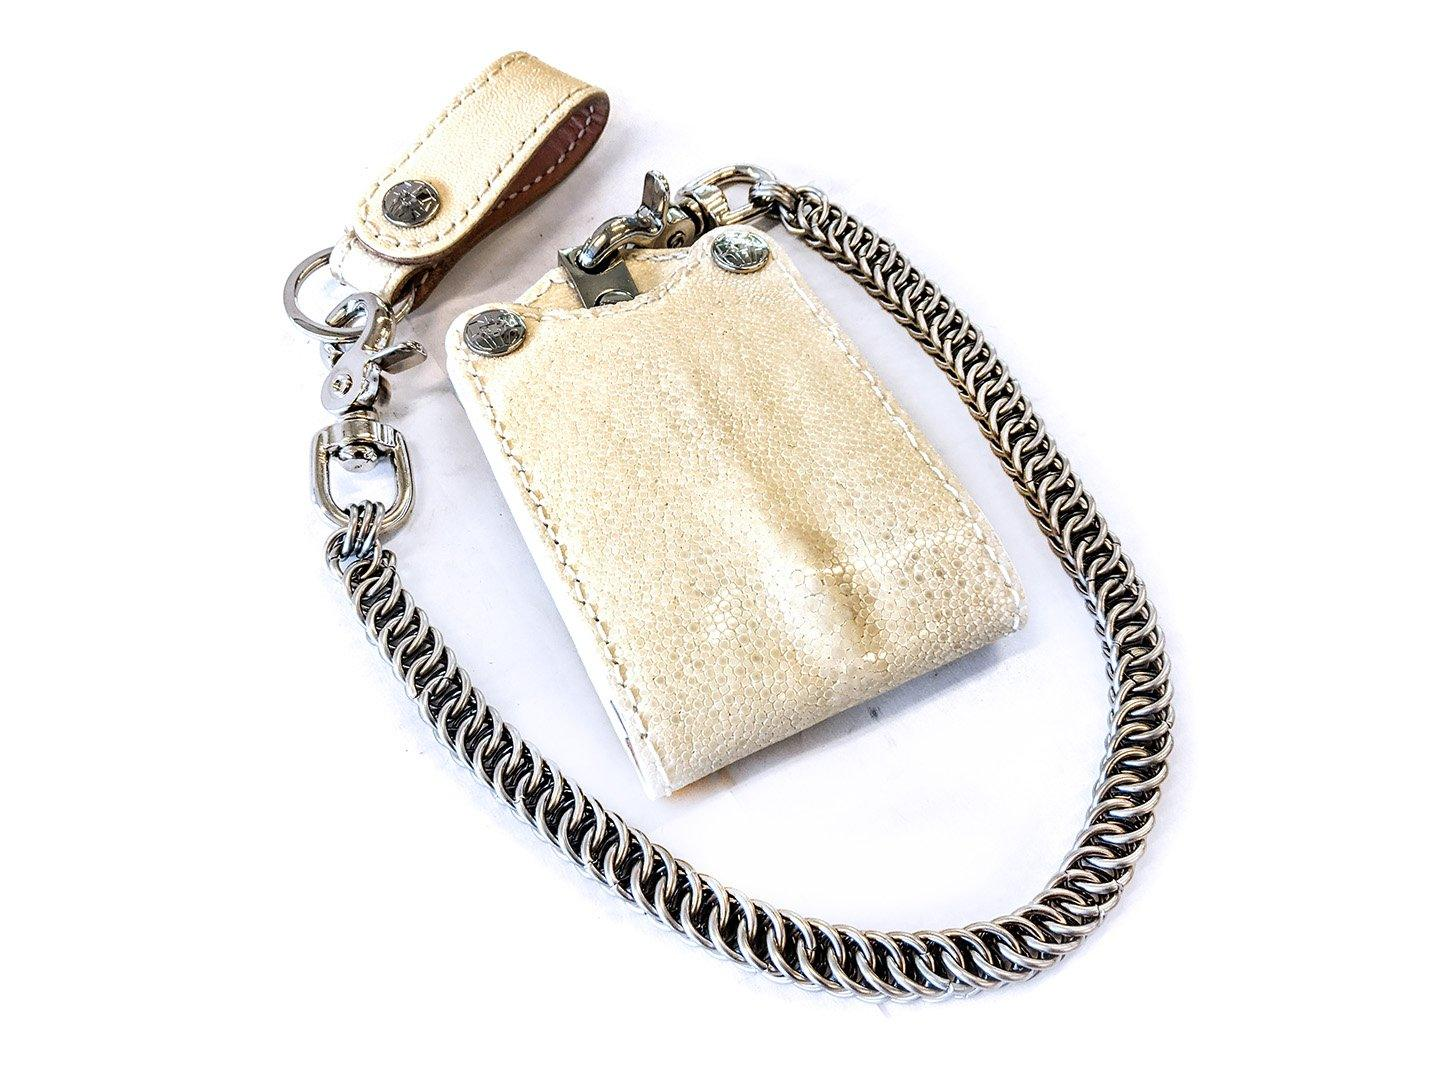 Bifold Leather Chain Wallet - Cream Stingray